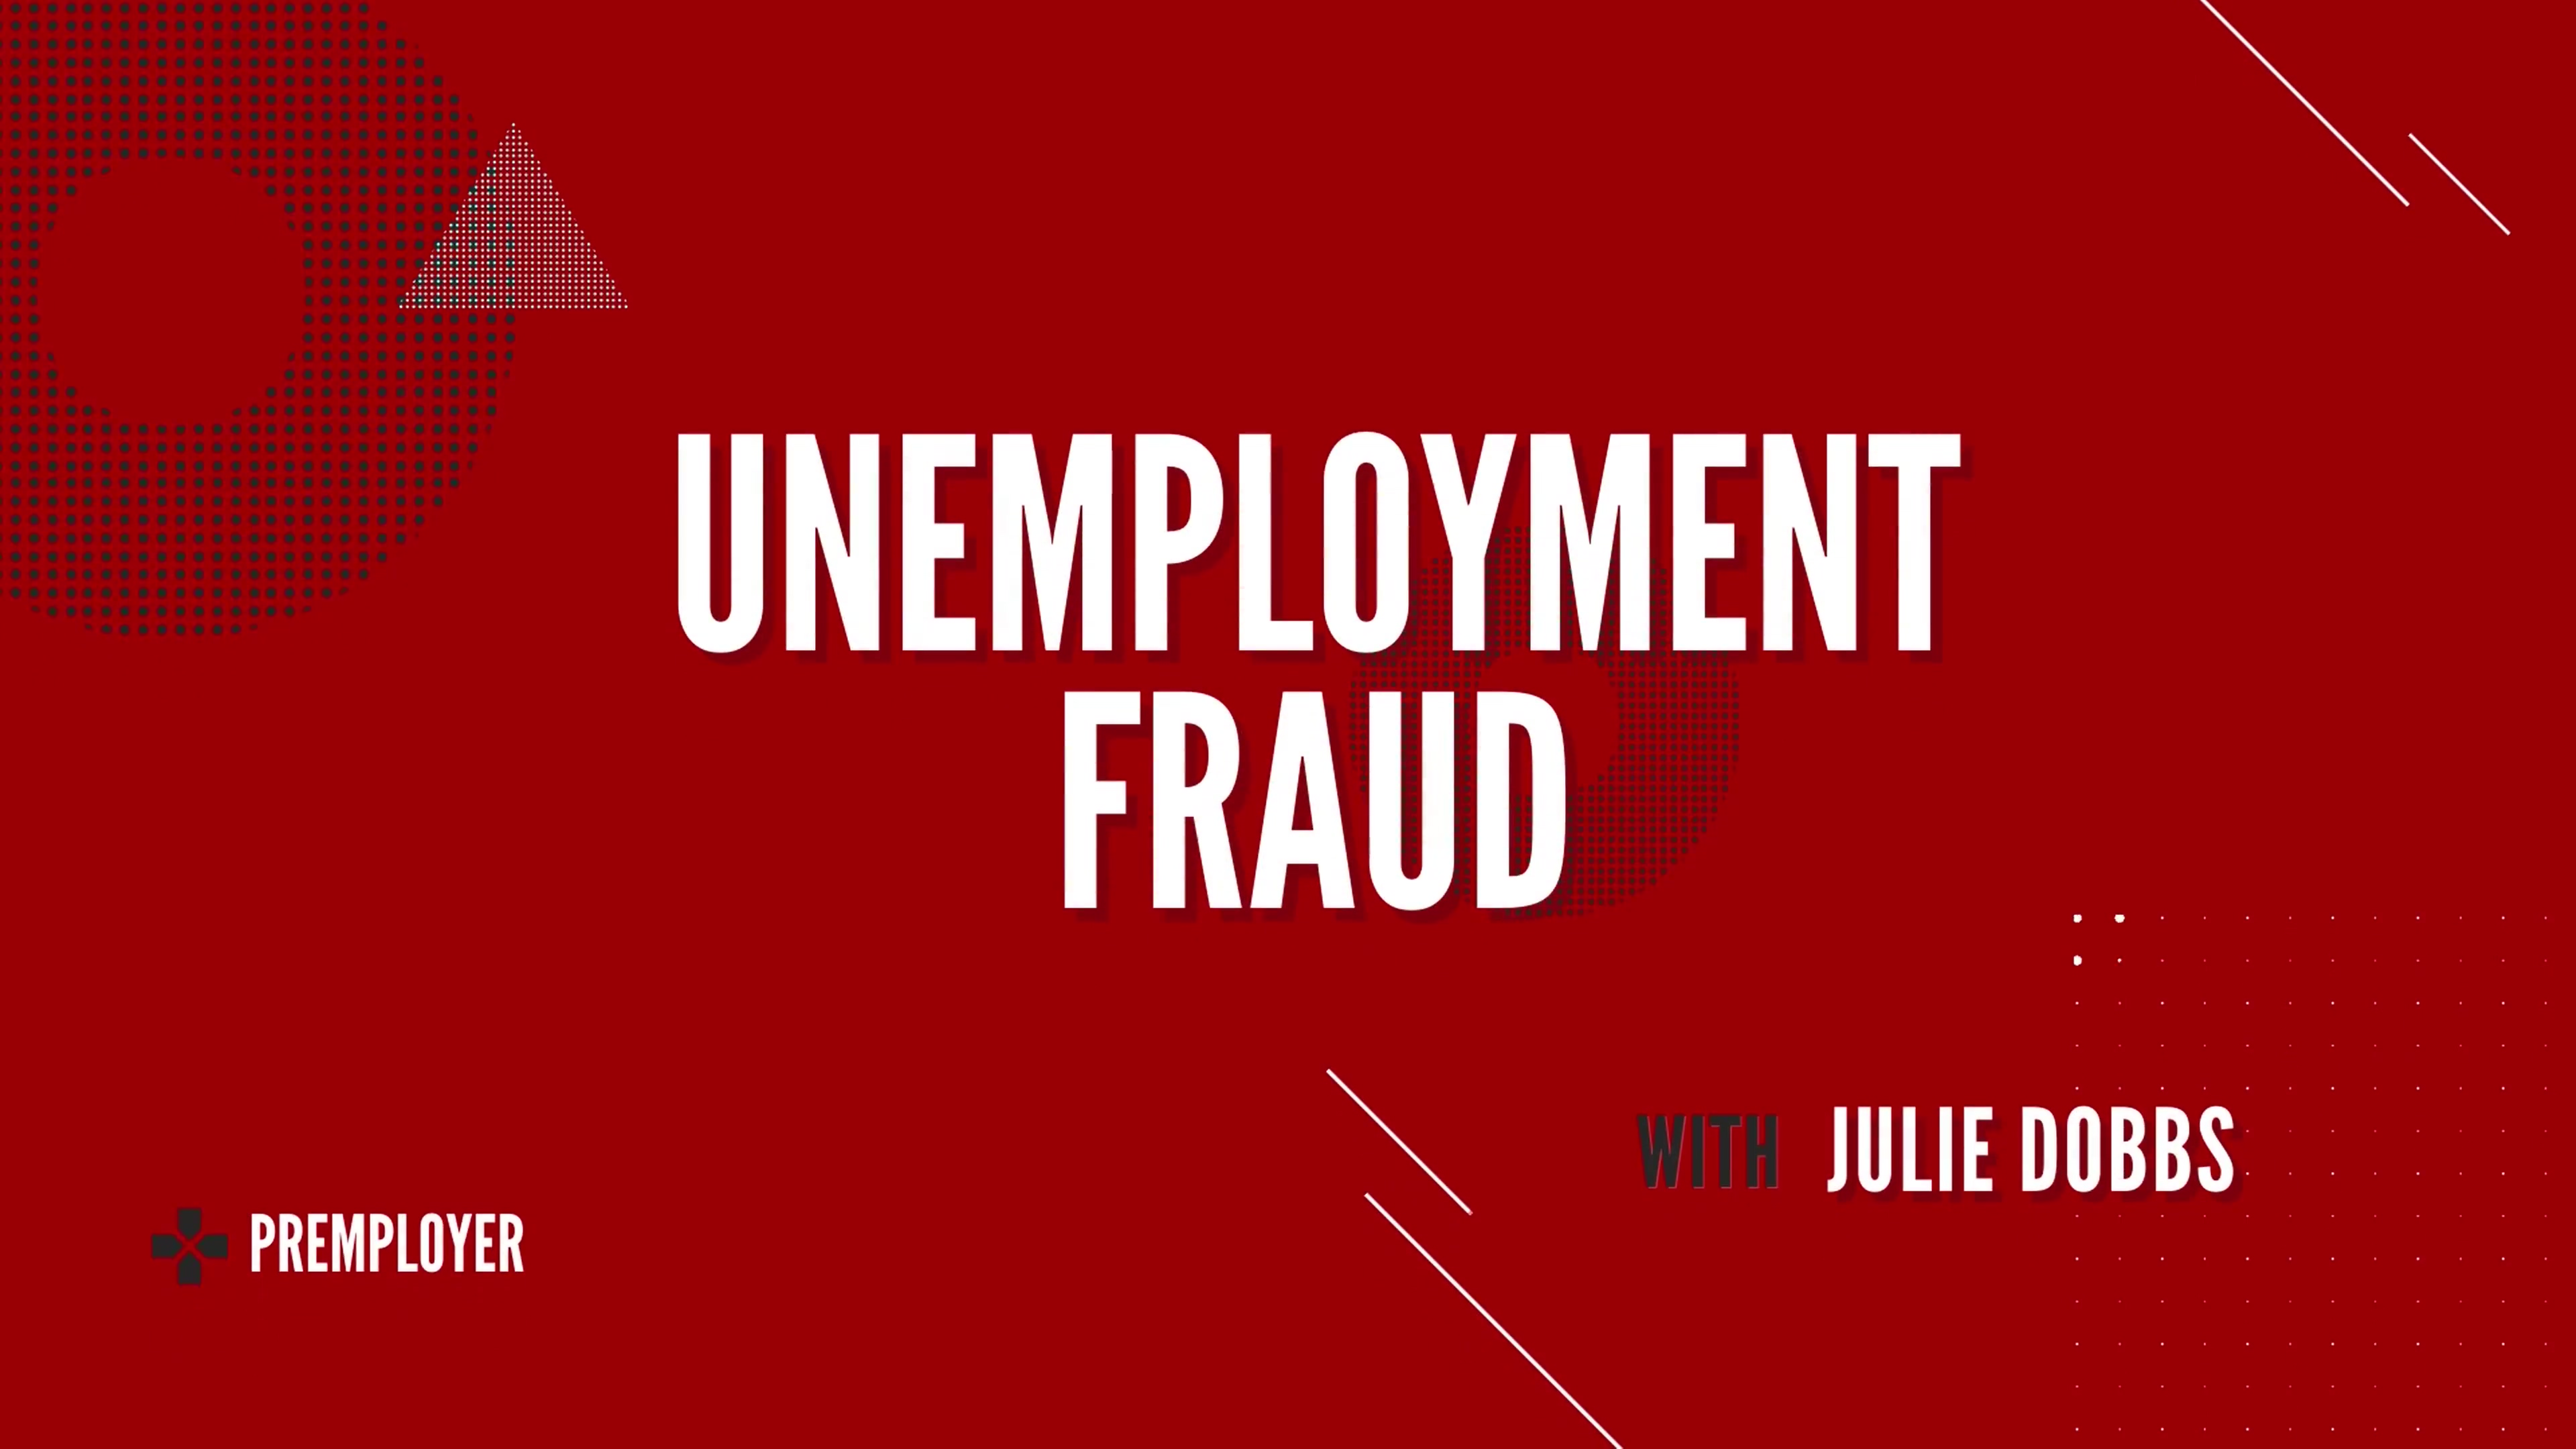 The Facts about Unemployment Fraud